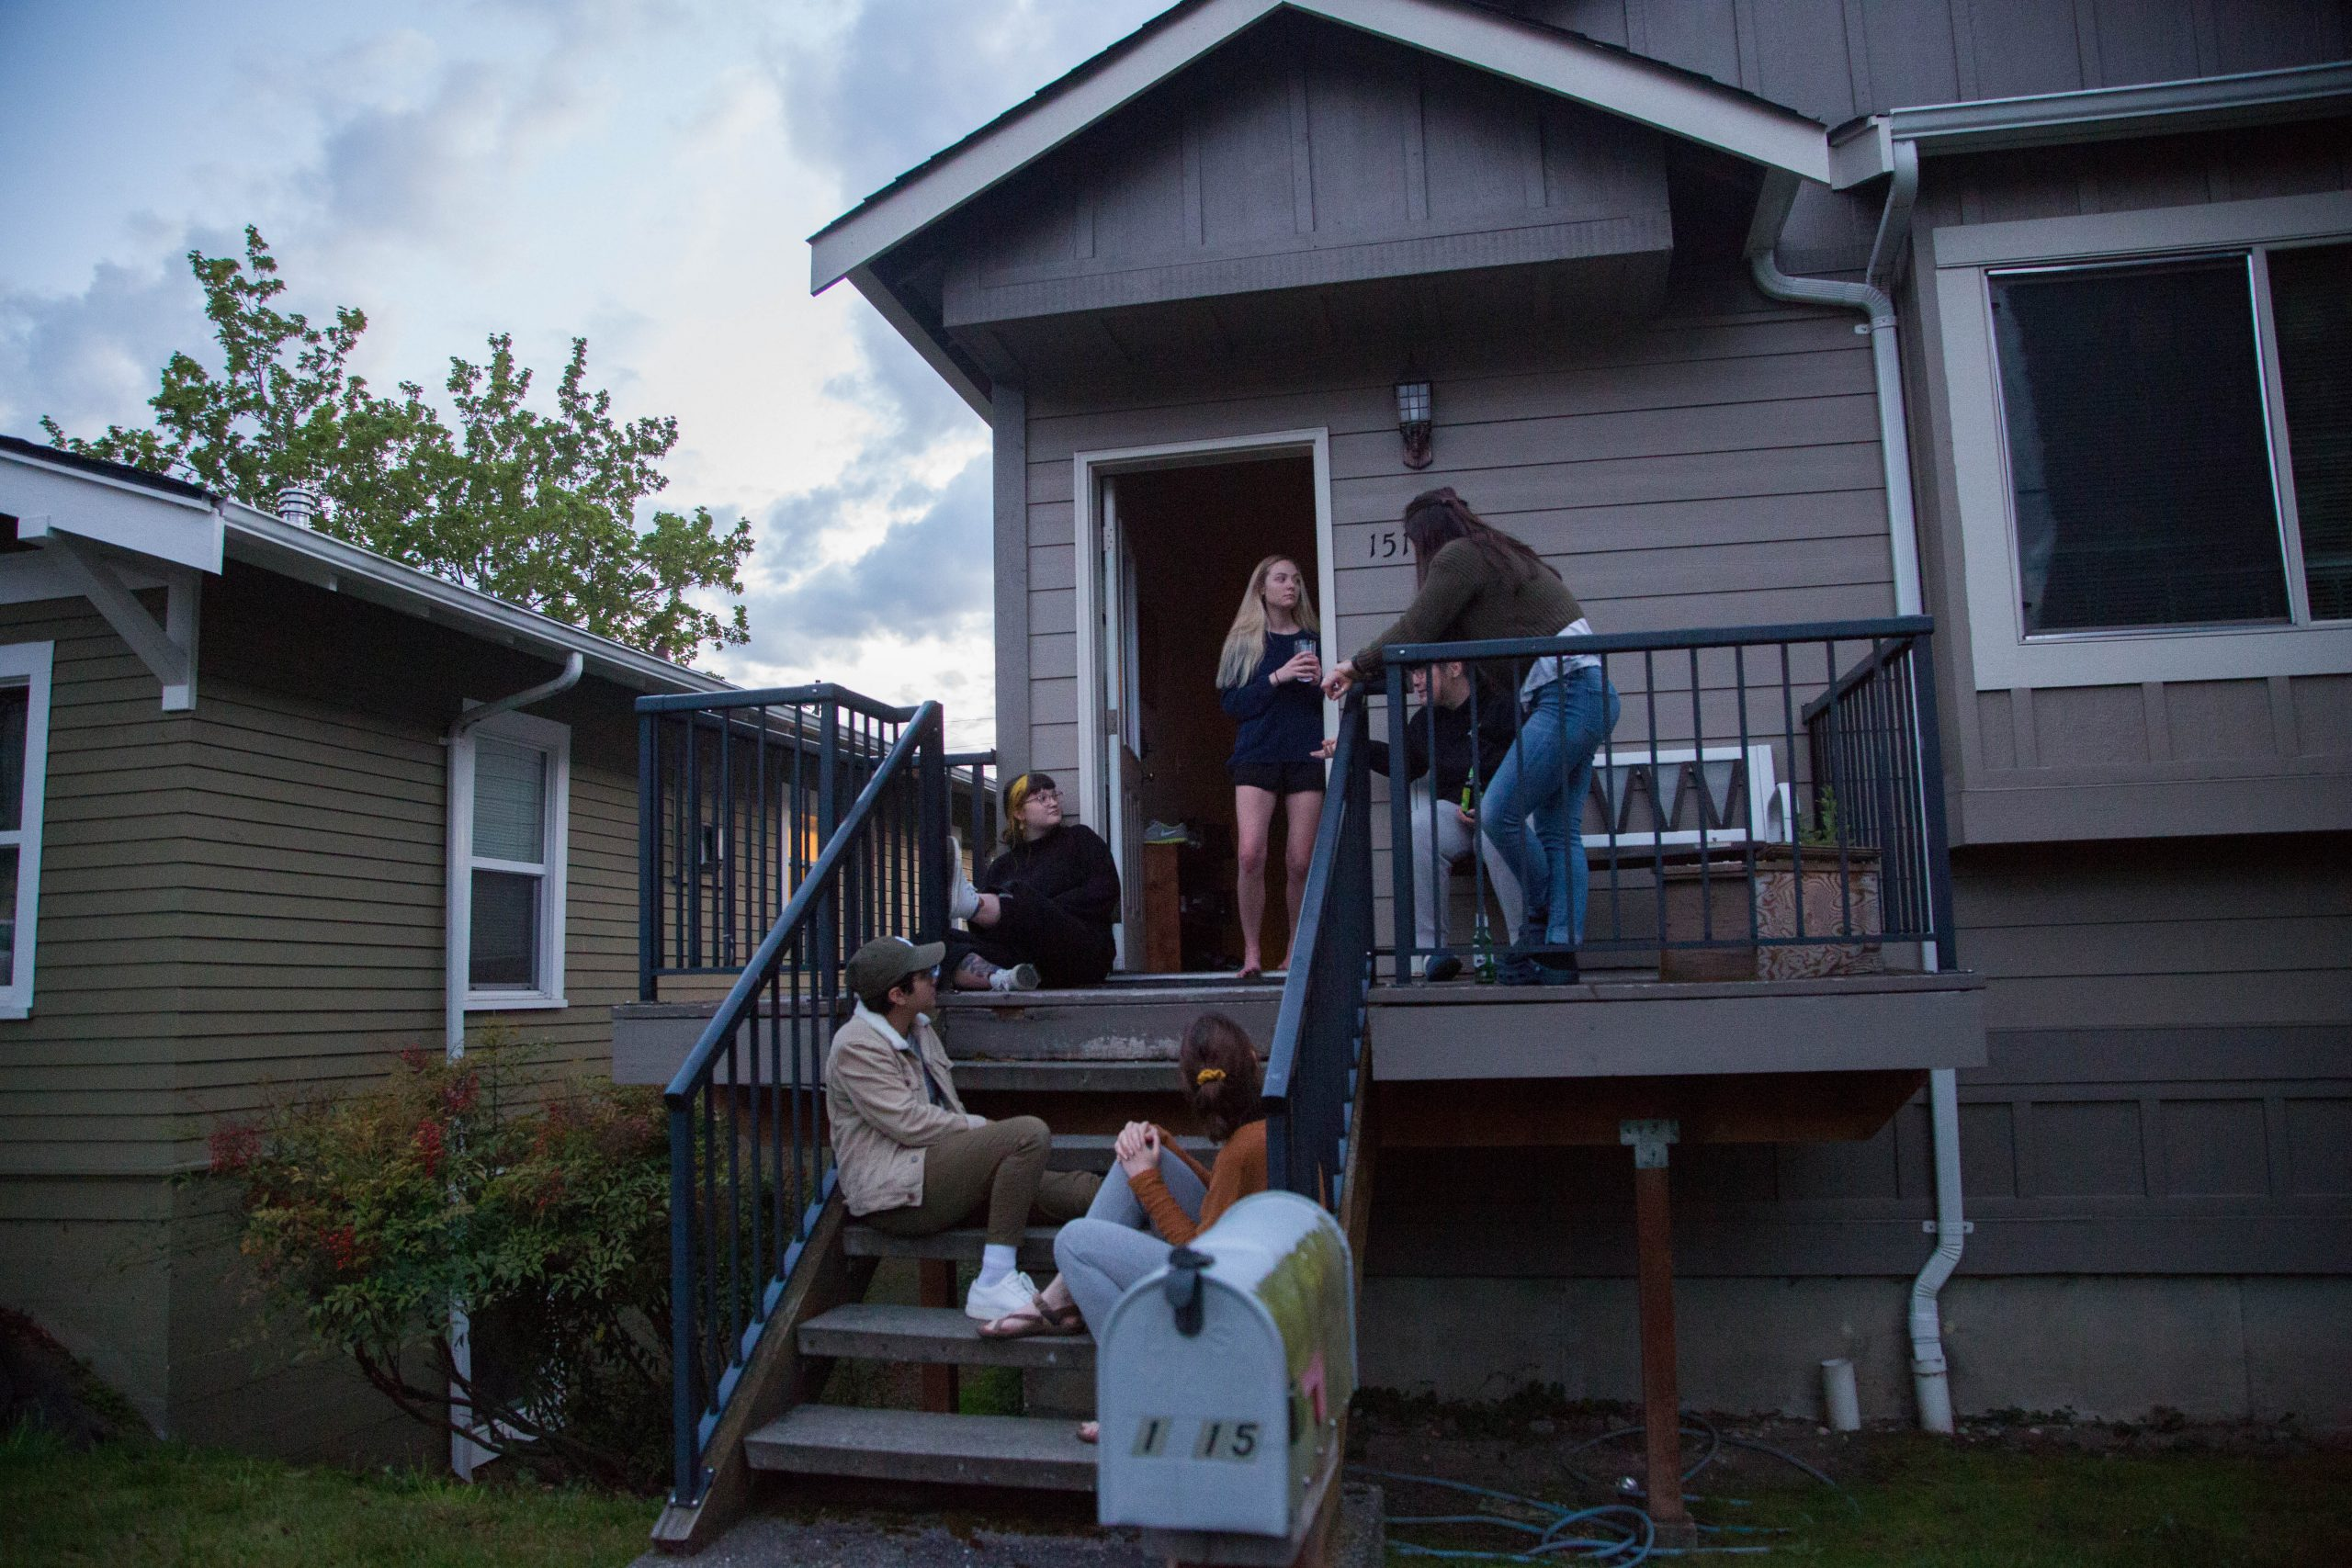 Residents of 1515 Franklin St gather on their front porch with friends. Hanging out at a distance has been important in keeping sane during quarantine.